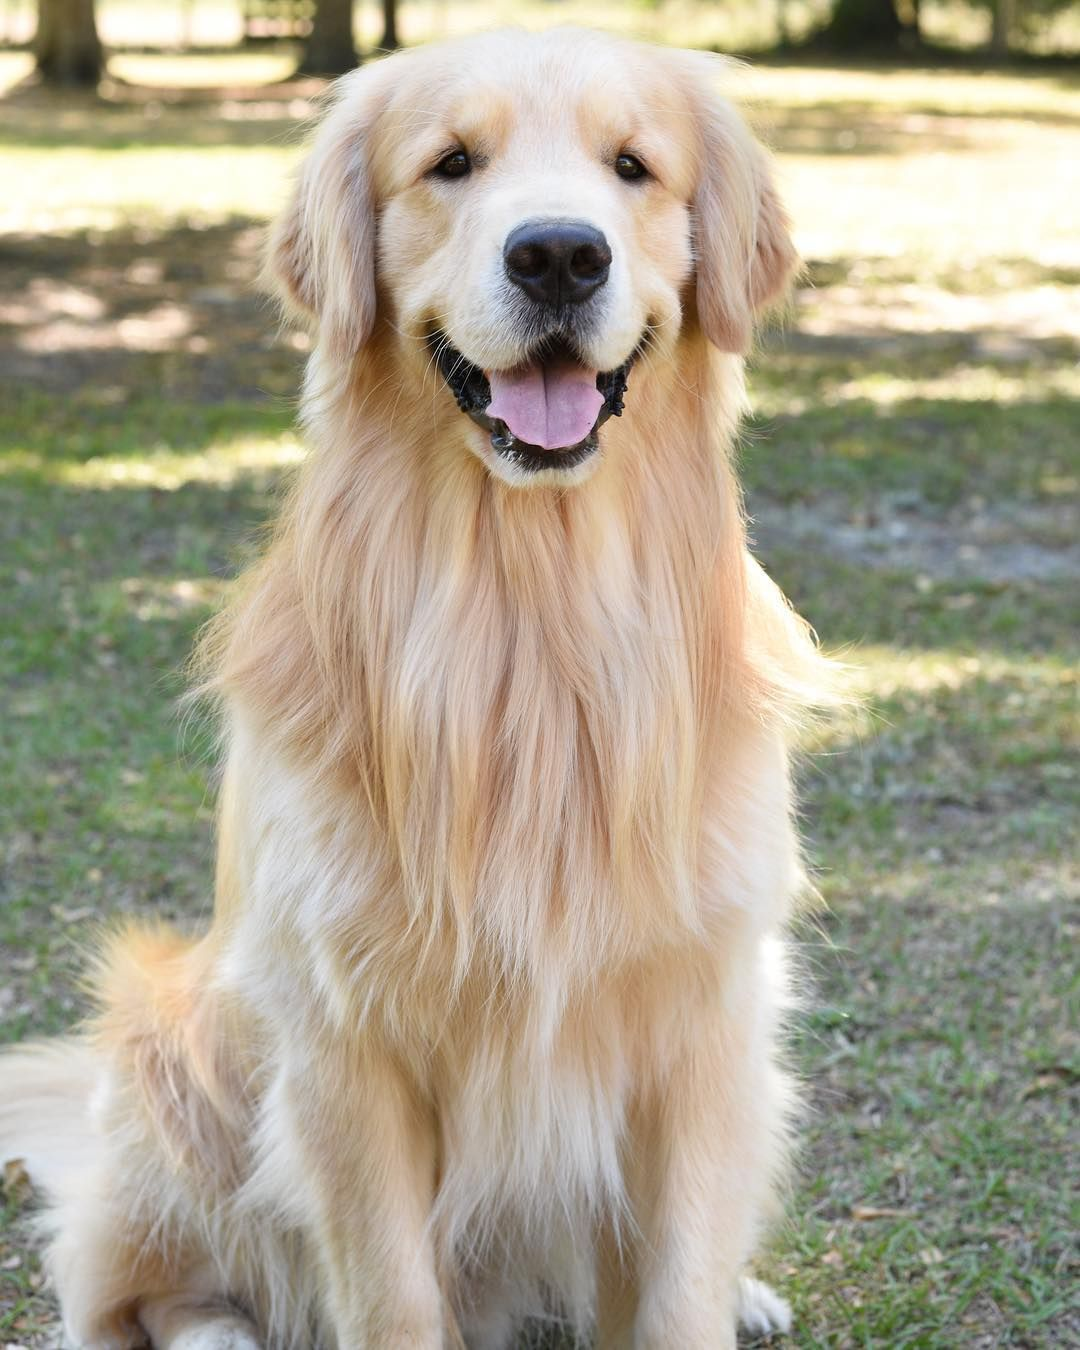 Kono Dogs Golden Retriever Pure Breed Dogs